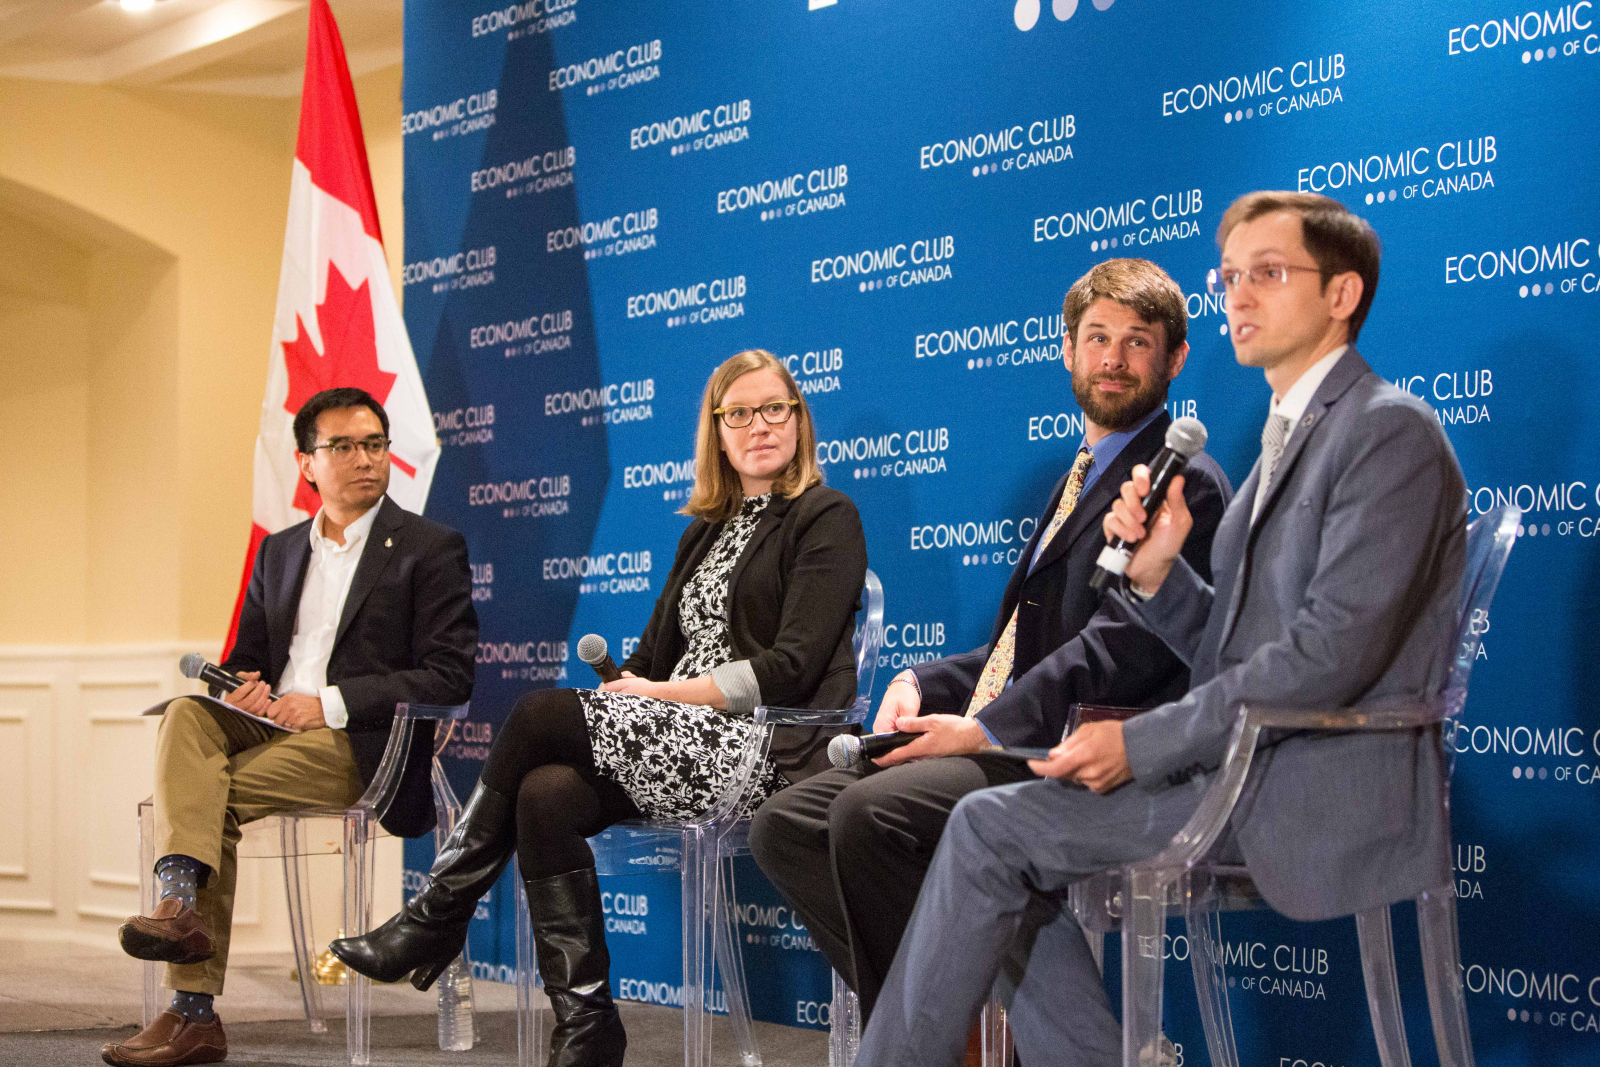 Kevin Chan, Facebook, Canada, Ottawa, Economic Club of Canada, Karina Gould, fake news, elections, Russia